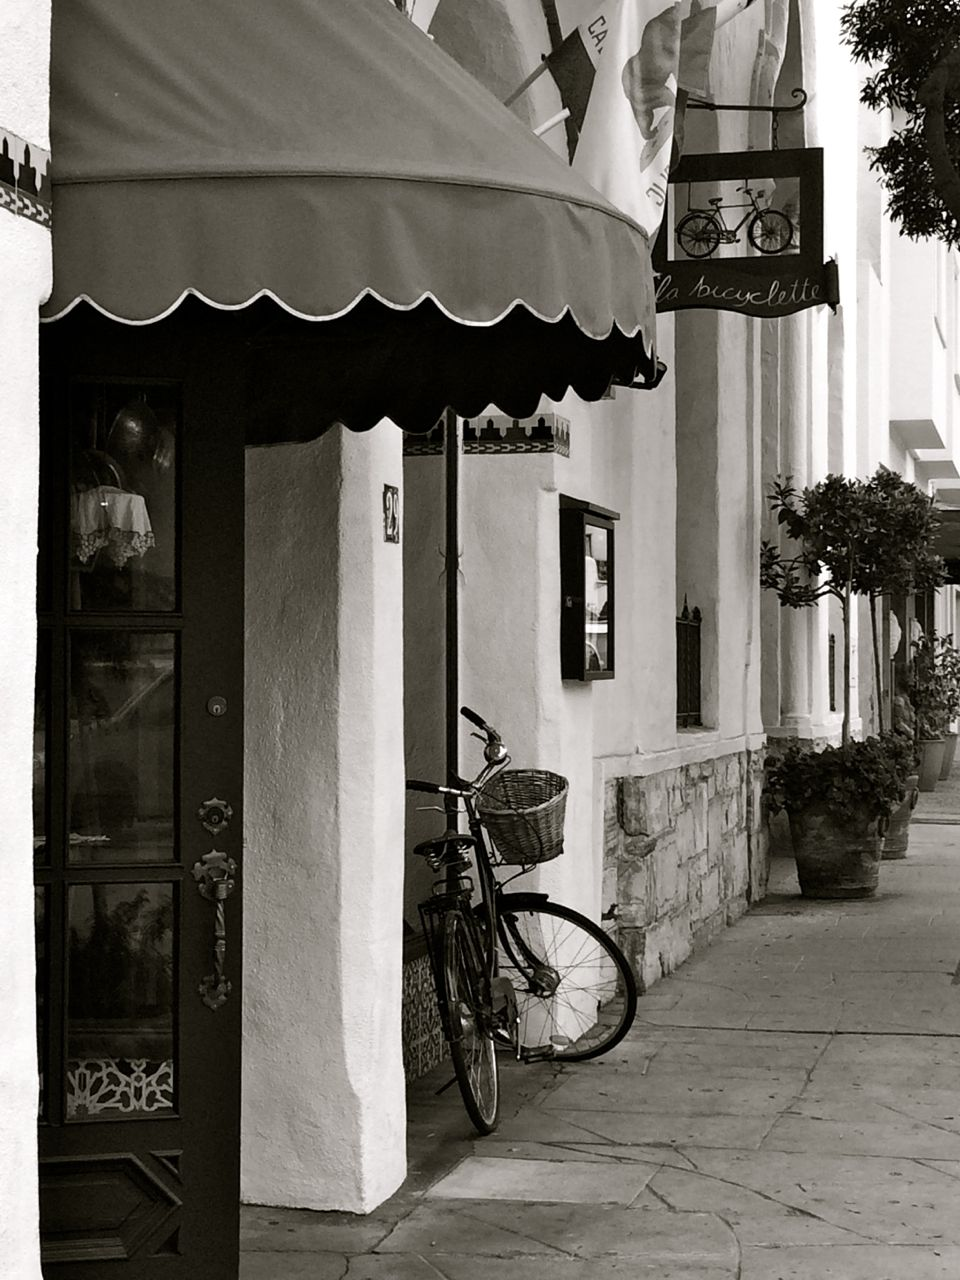 Entry Way of La Bicyclette (french cafe) in Carmel, California